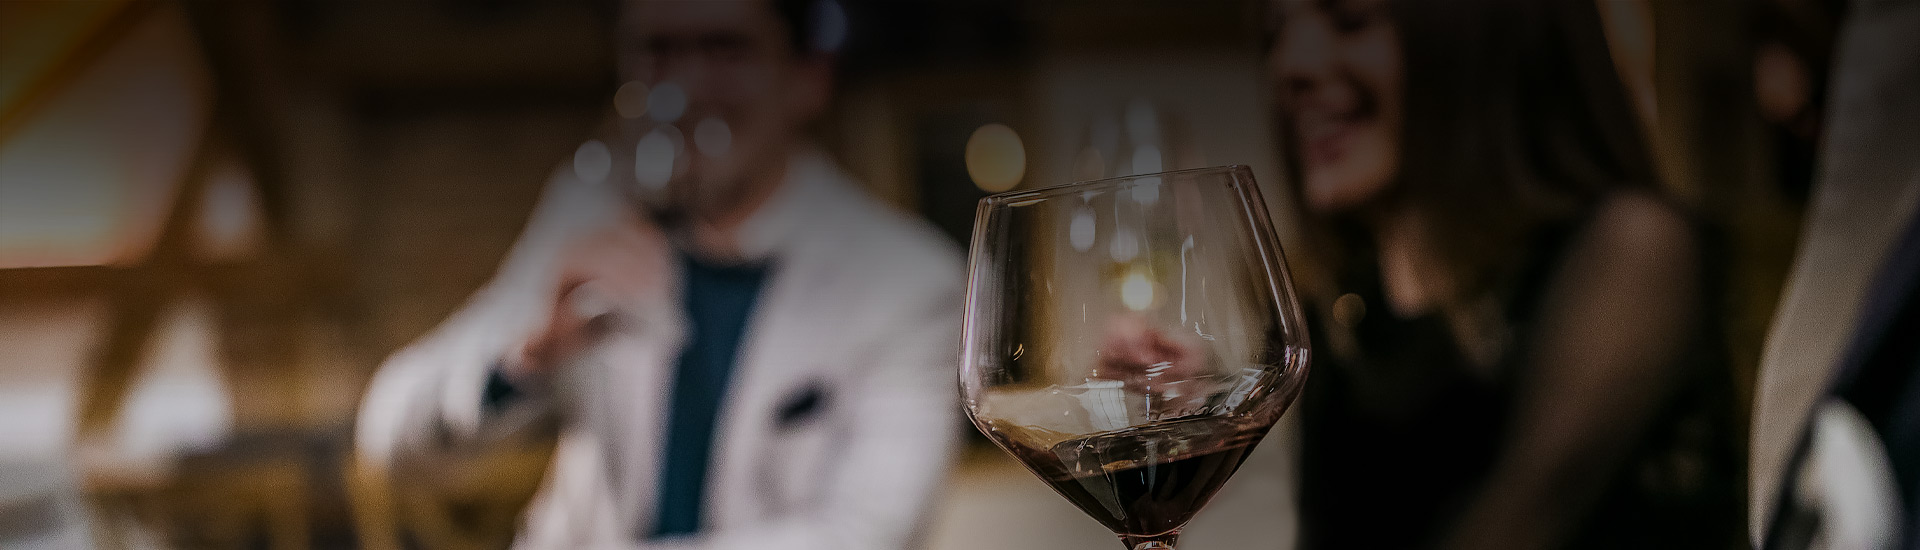 glass of wine with people blurred in background